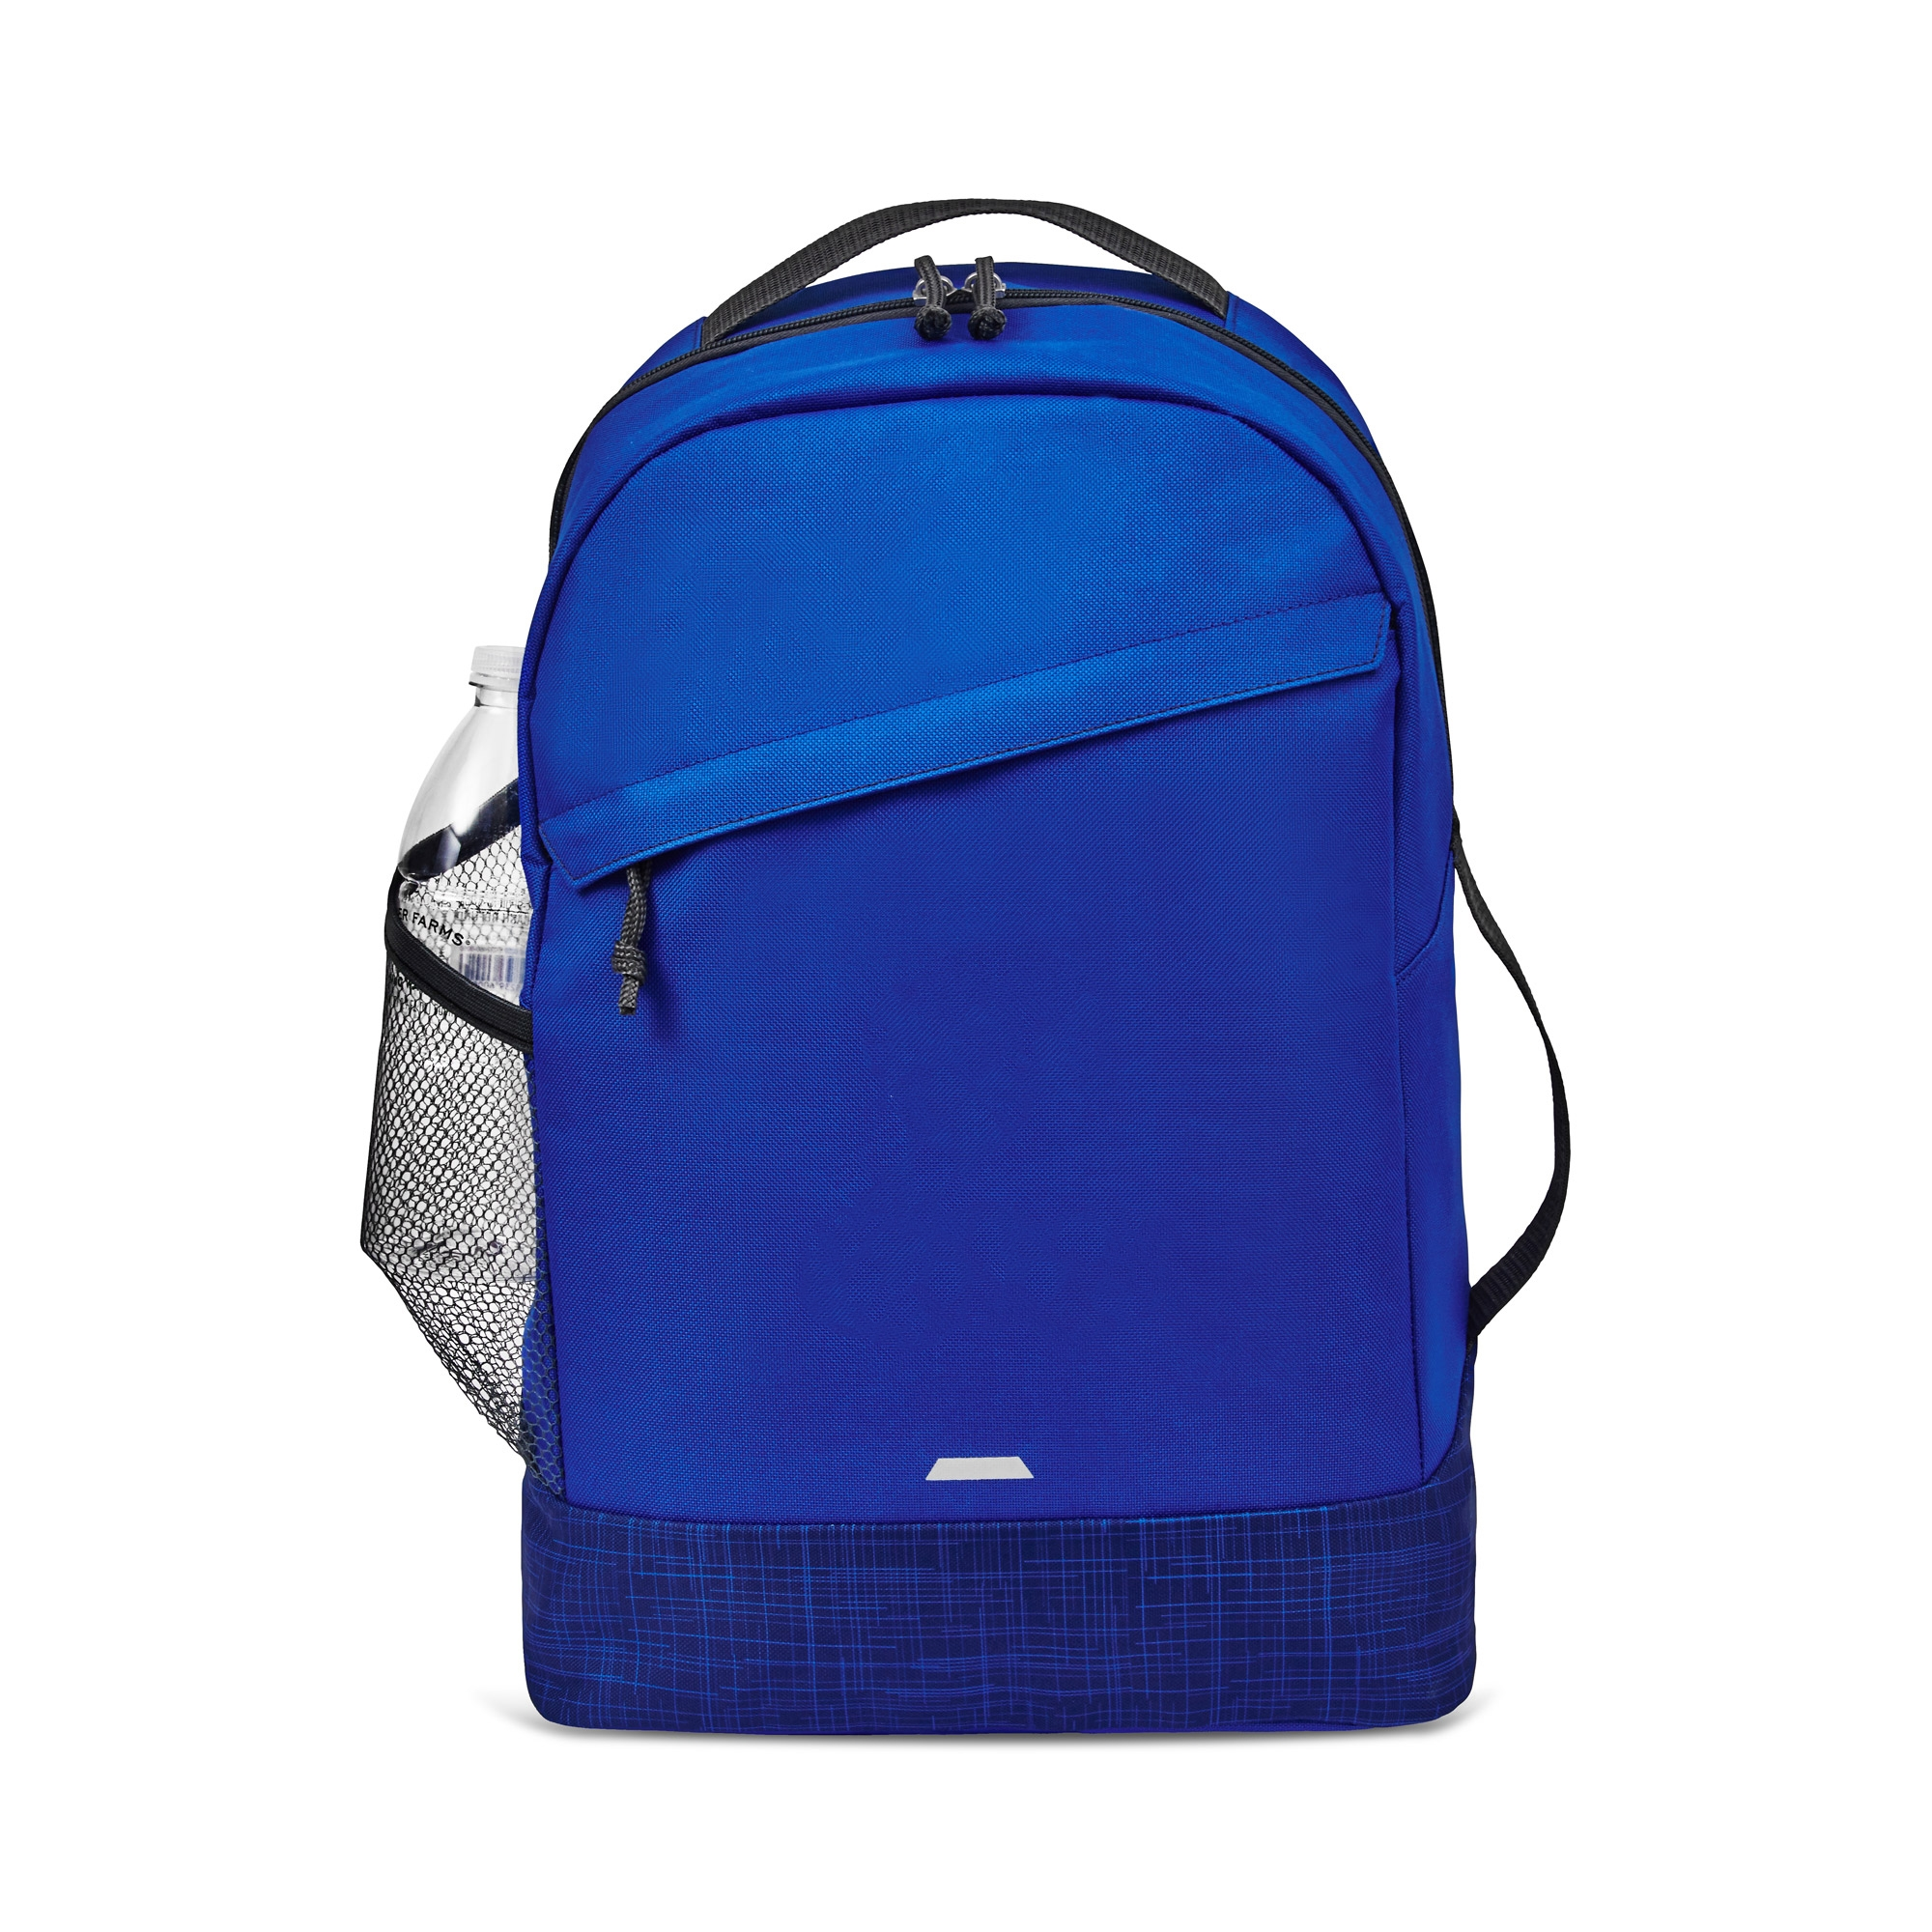 Gemline 5263 - Taurus Backpack